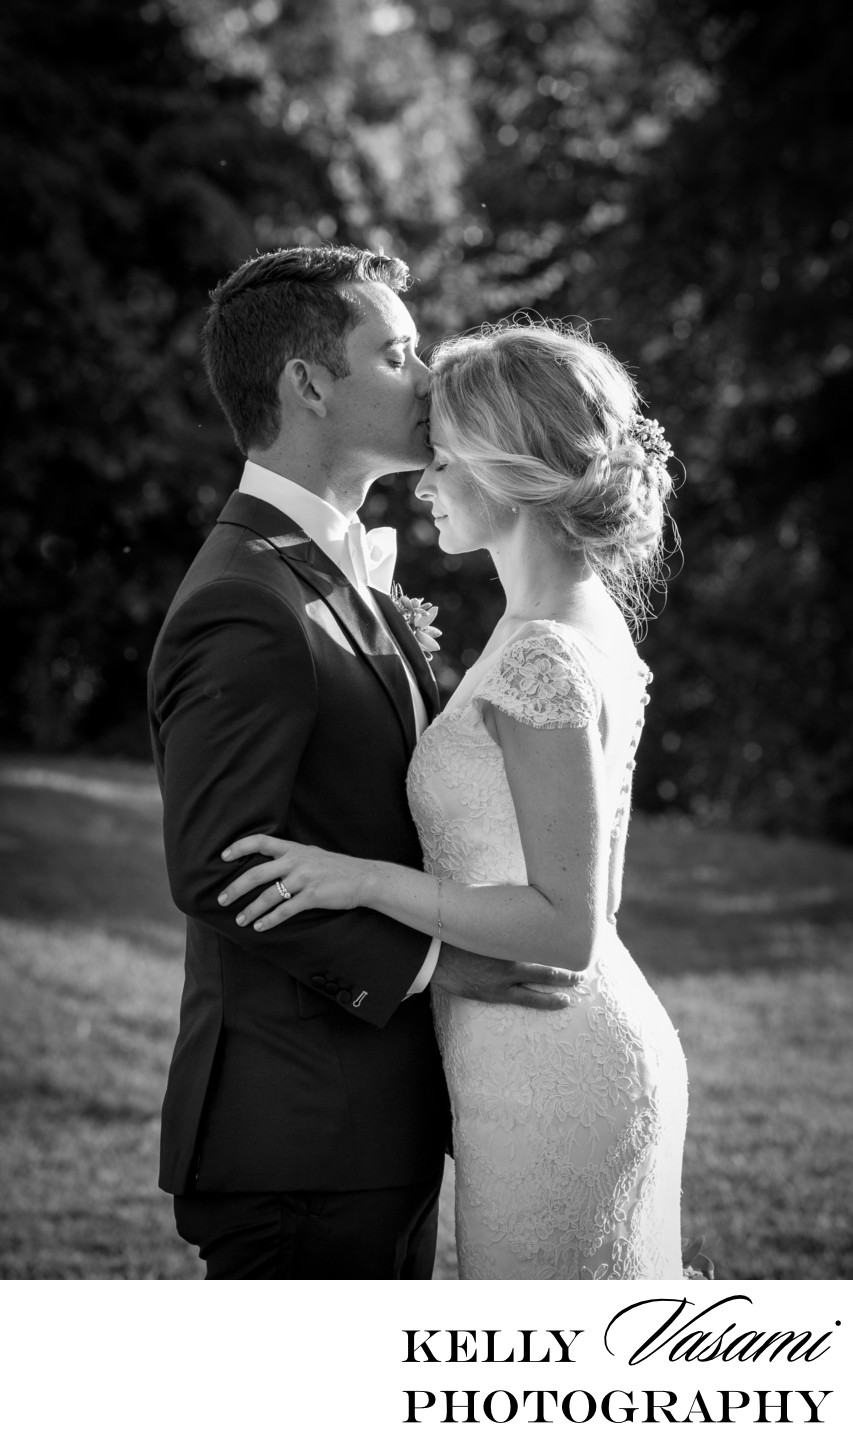 Black & White Intimate Moment Between Bride and Groom